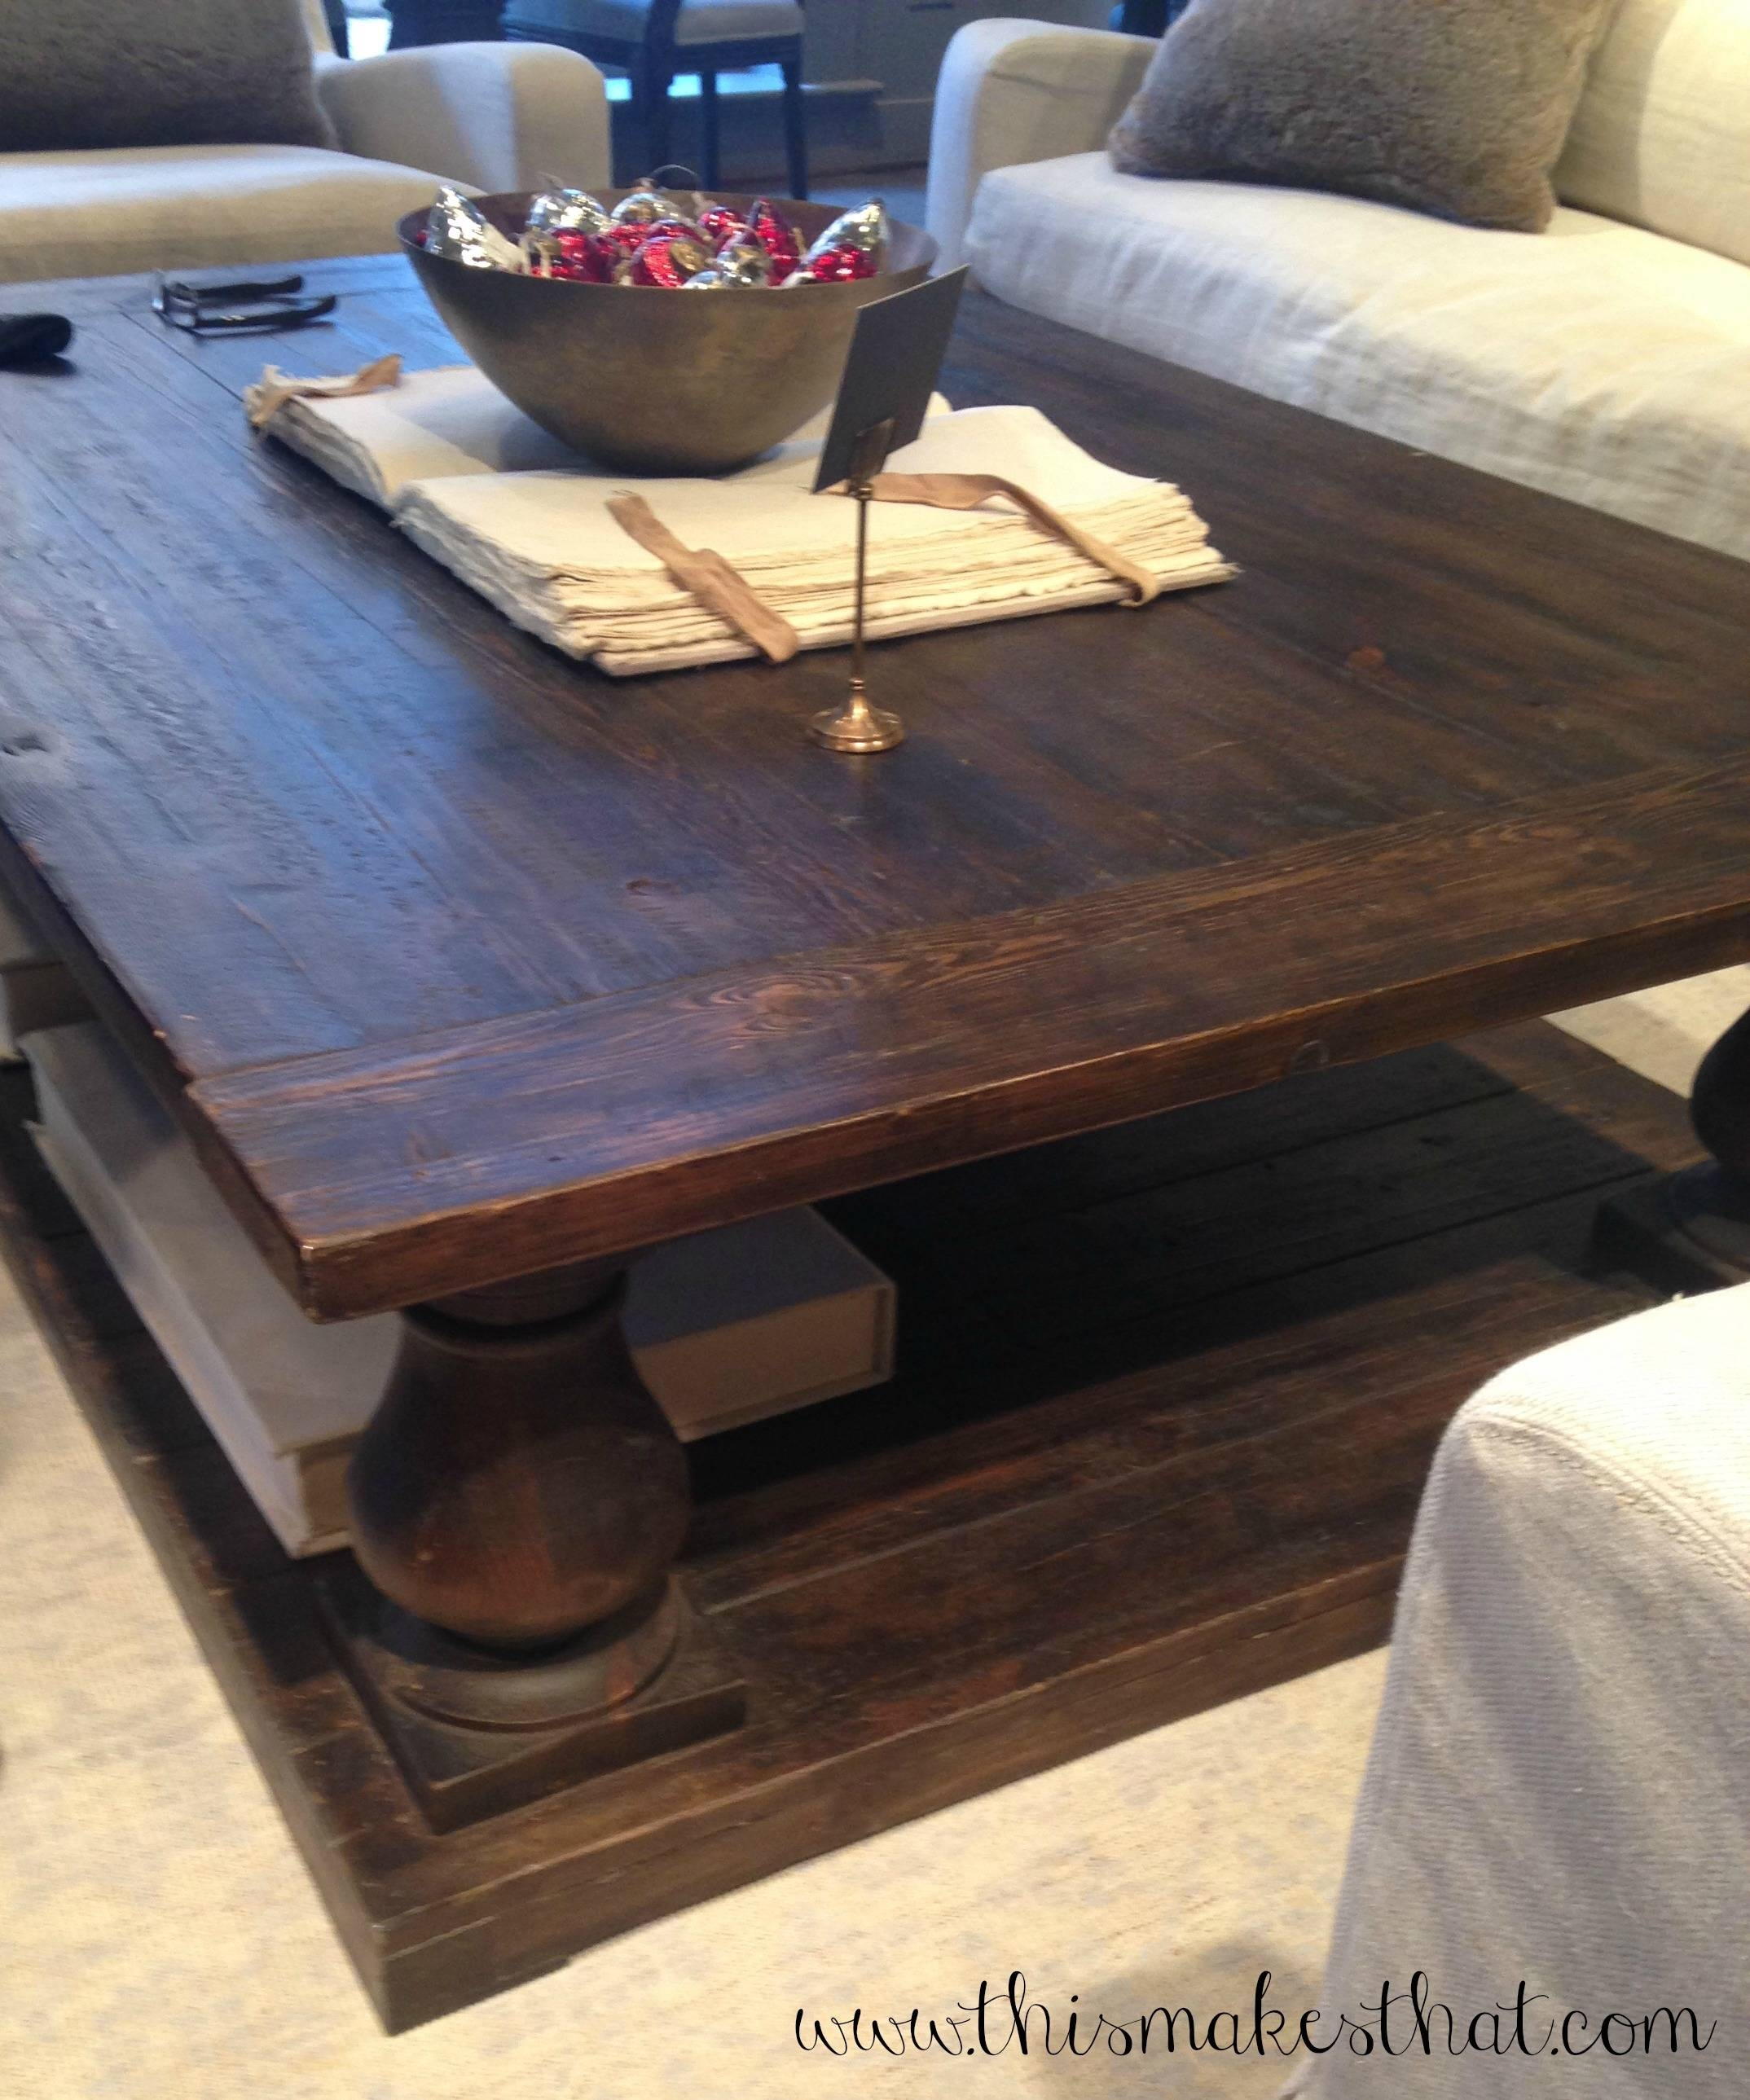 Pottery Barn Coffee Table Canada: 30 Photos Rustic Style Coffee Tables